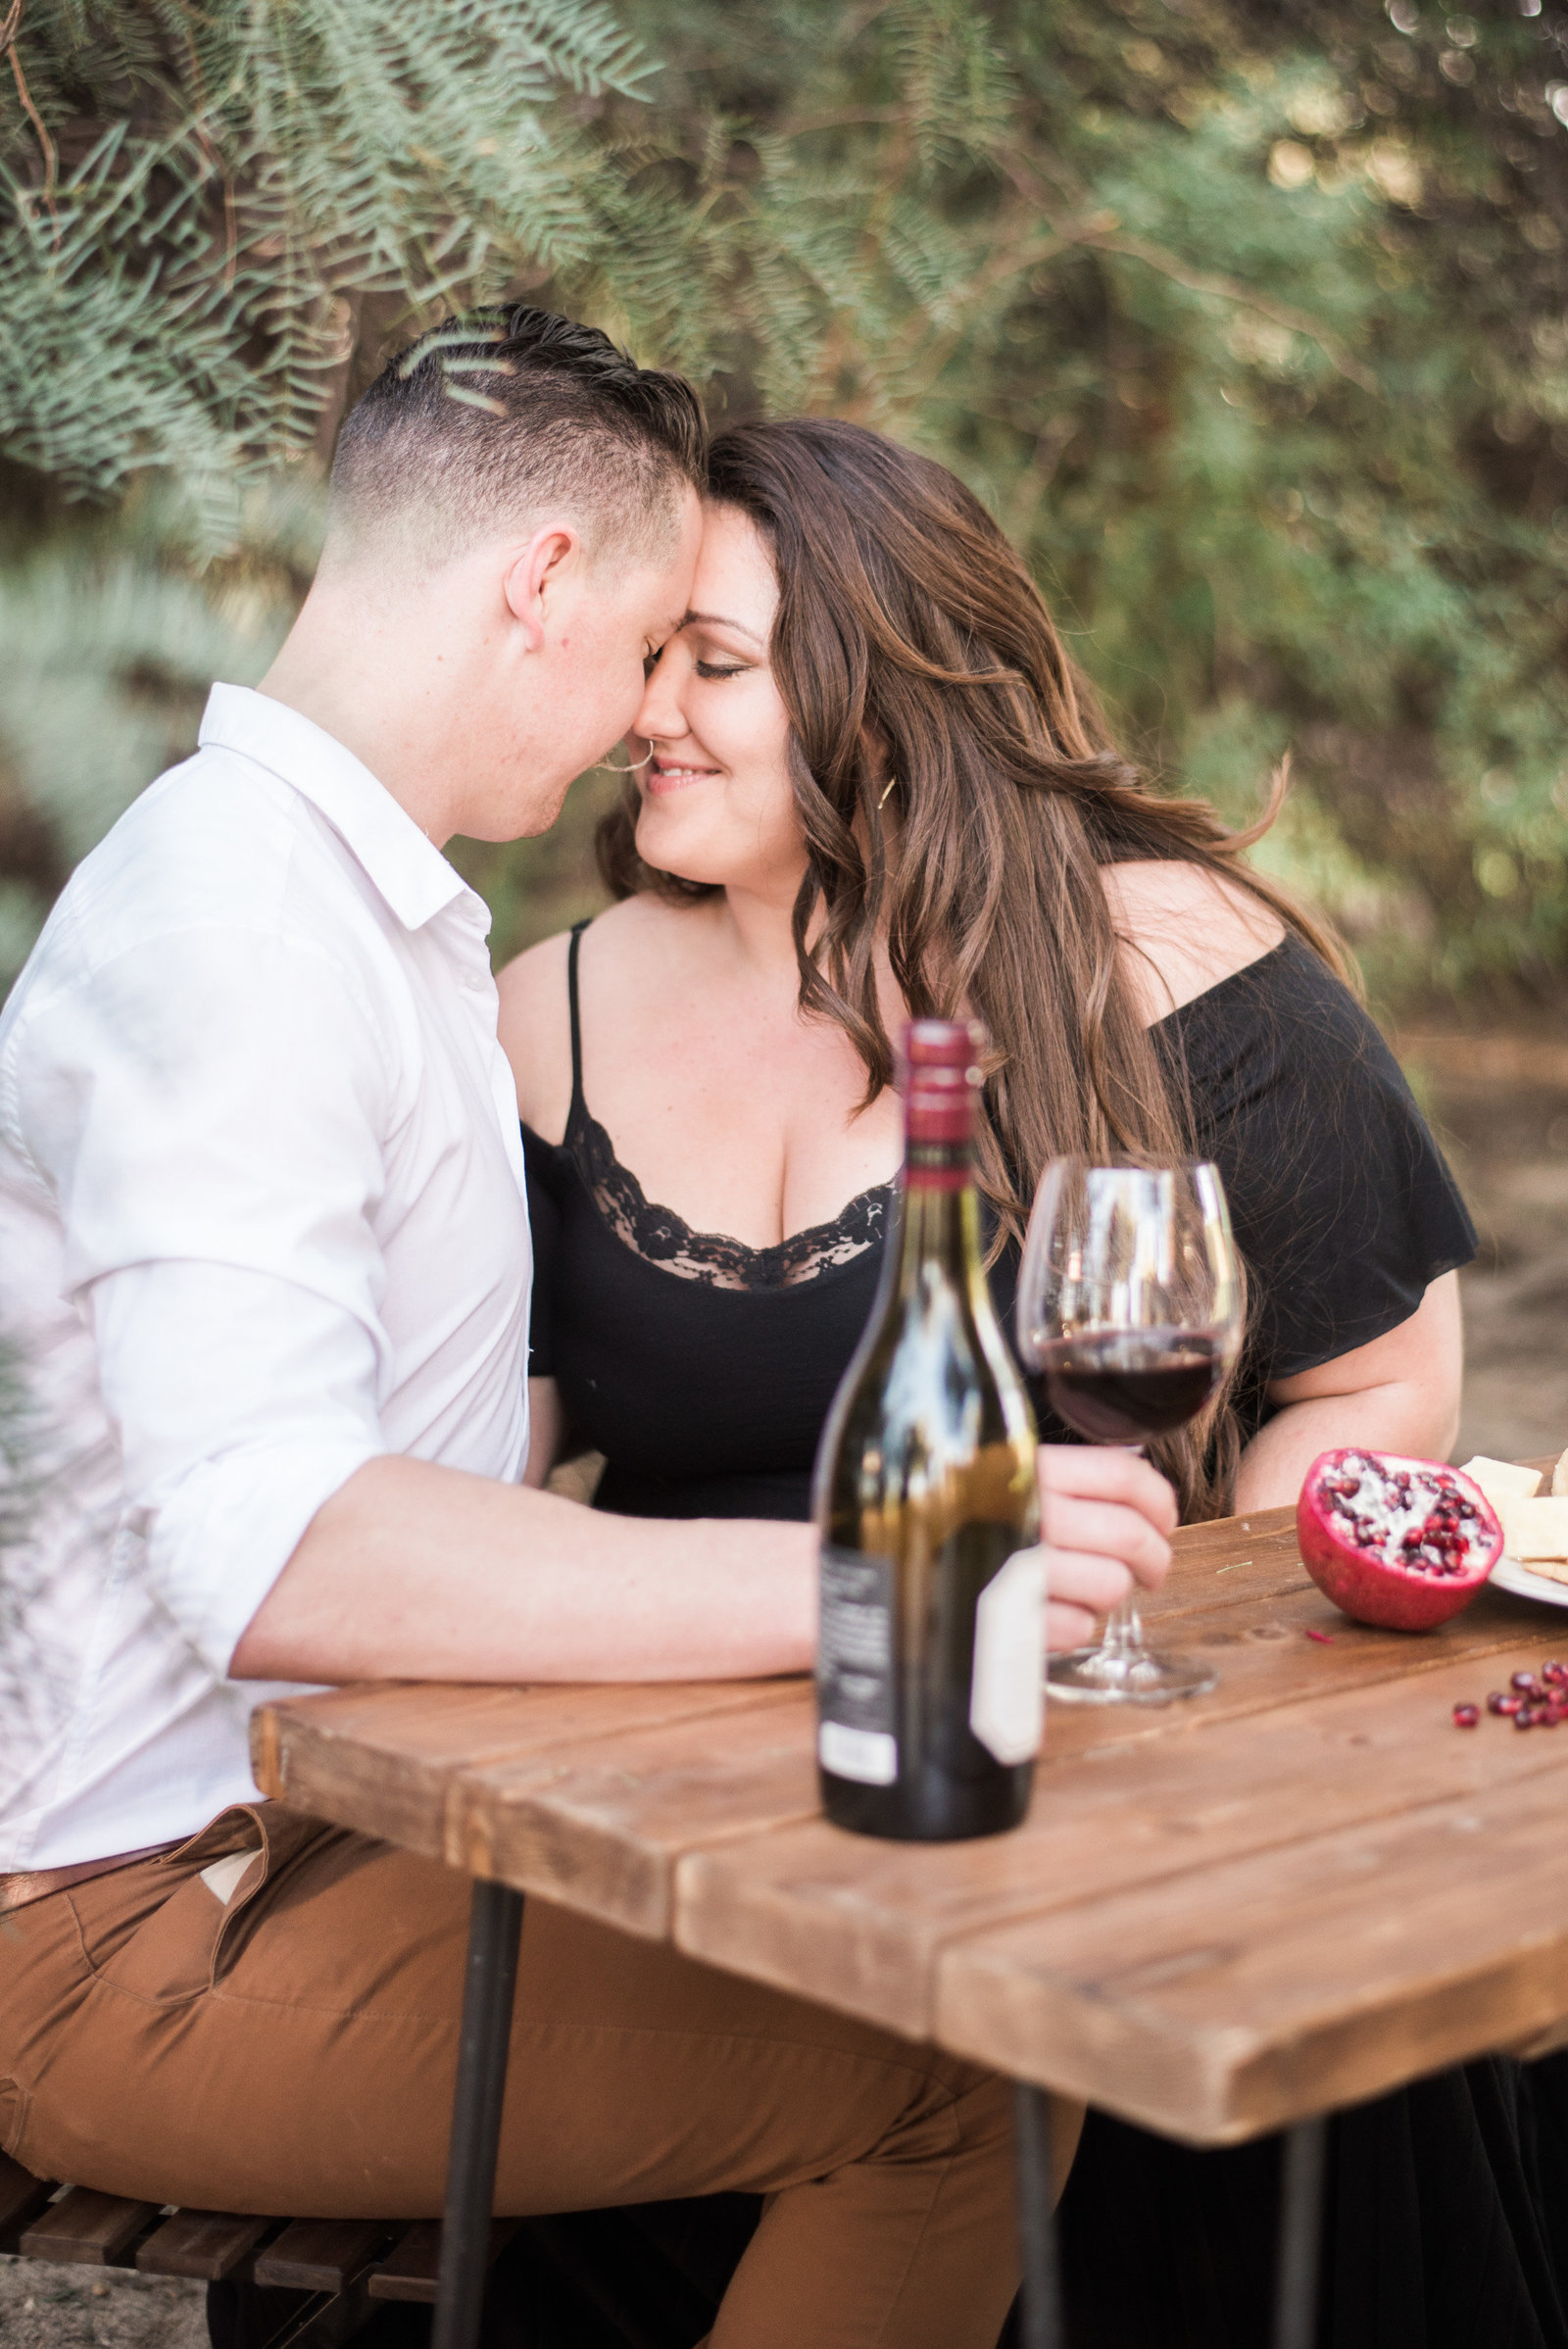 Romantic Tucson Desert Engagement Session Photo of Couple Having a Picnic and Drinking Wine | Tucson Wedding Photographer | West End Photography